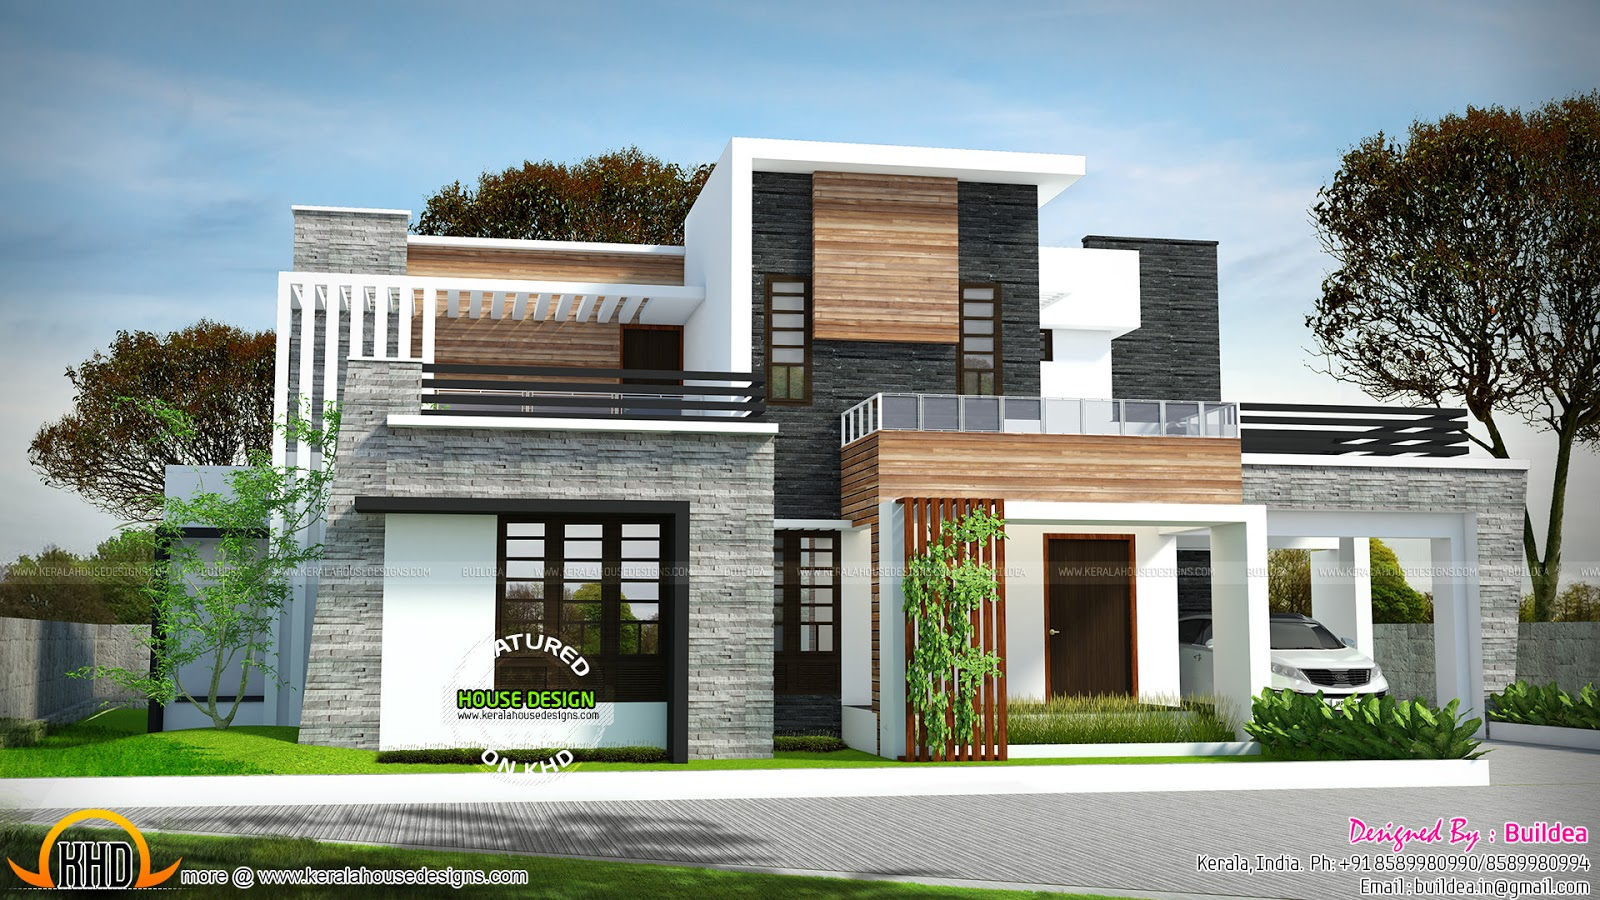 2729 sq ft 4 bedroom flat roof modern house kerala home - Flat roof home designs ...